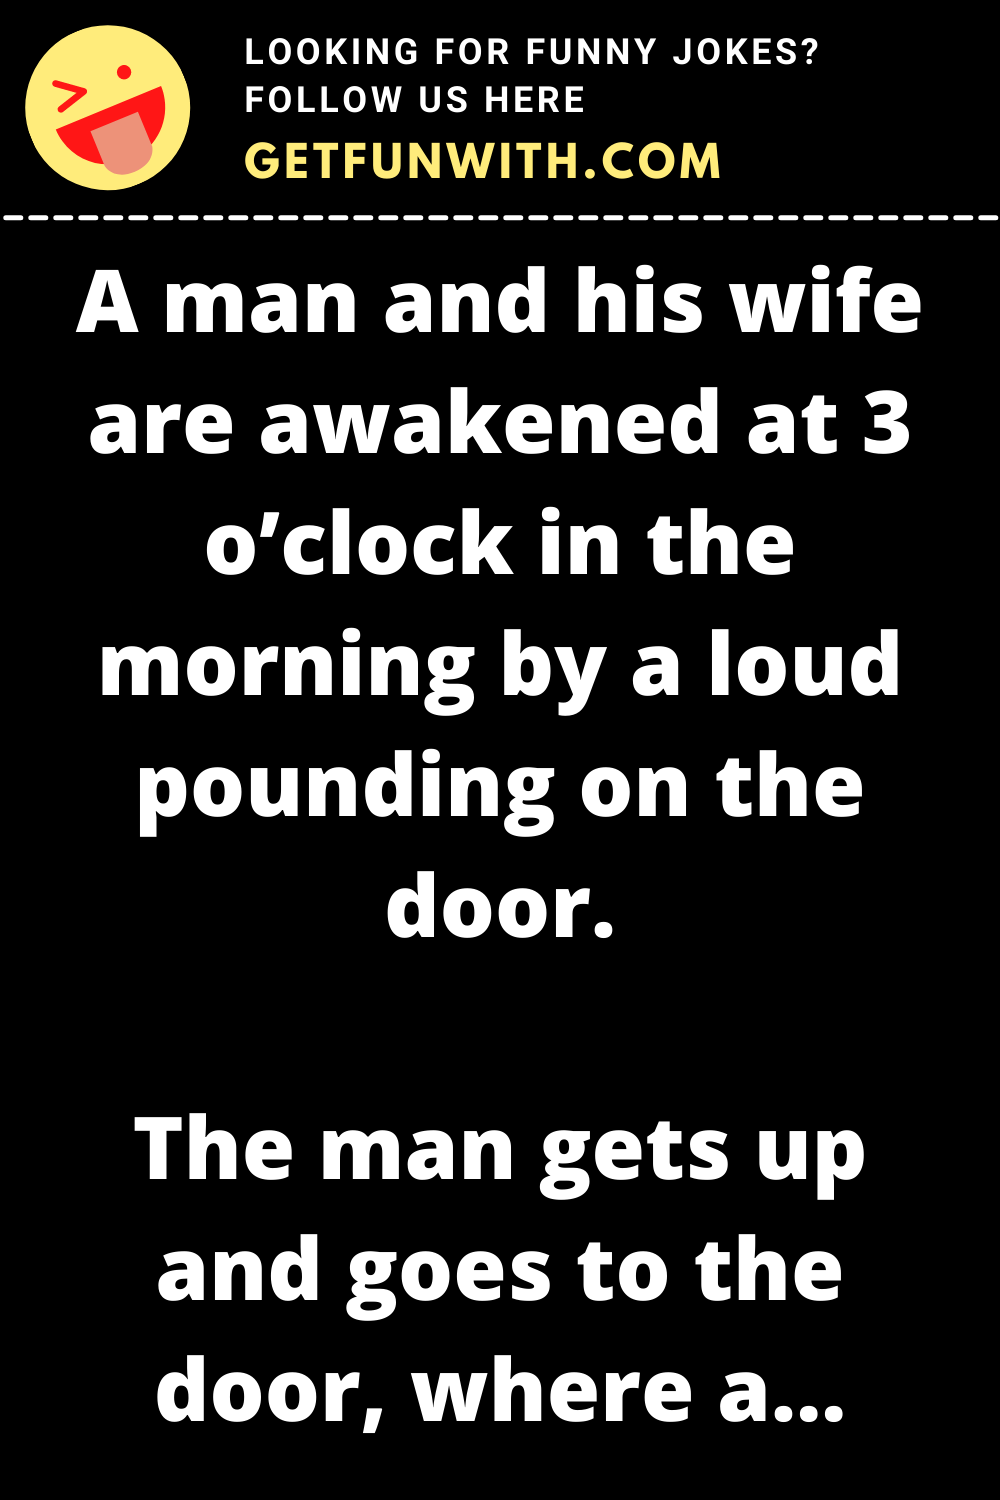 A man and his wife are awakened at 3 o'clock in the morning by a loud pounding on the door.